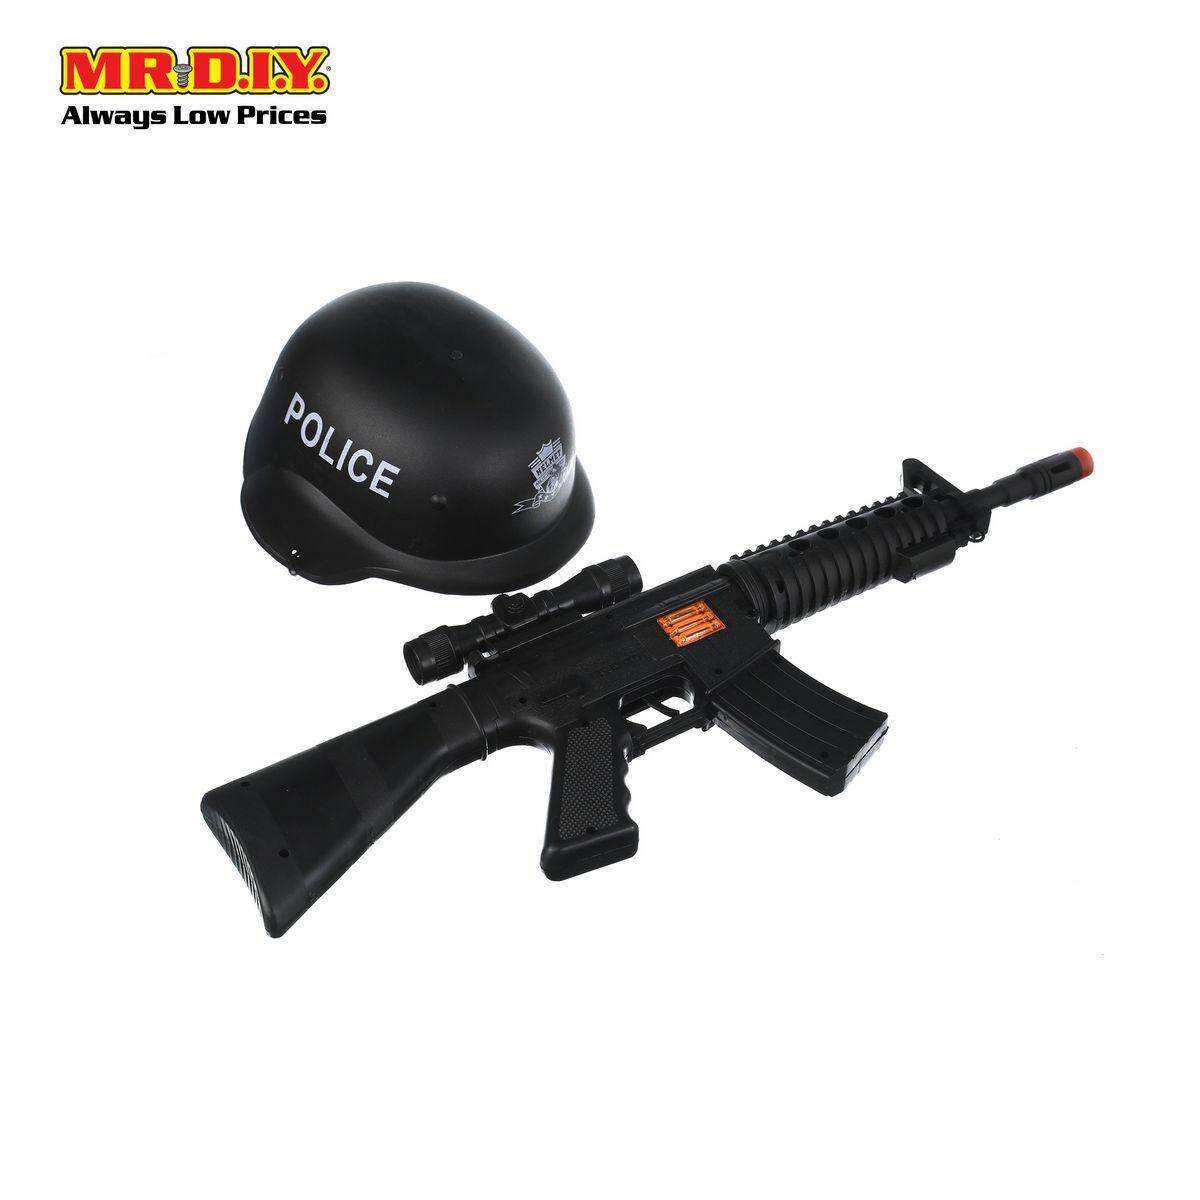 Military Toy Set for Kids